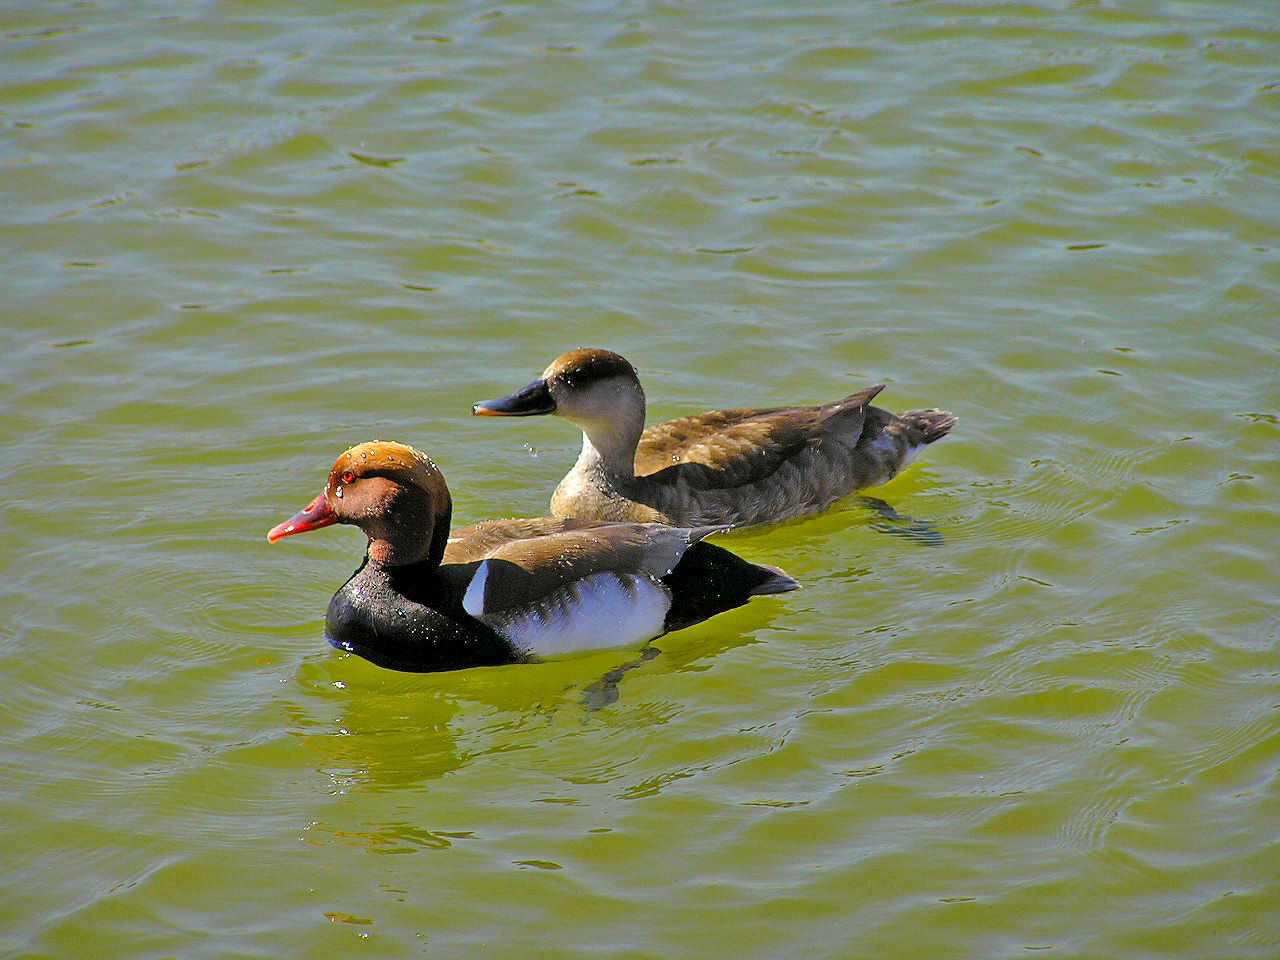 Animal Animal Themes Animal Wildlife Animals In The Wild Beauty In Nature Bird Day Duck Ducks Fauna Lake Nature Nature Netta Netta Rufina No People Outdoors Pair Swimming Tranquil Scene Tranquility Water Water Reflections Wild Wildlife